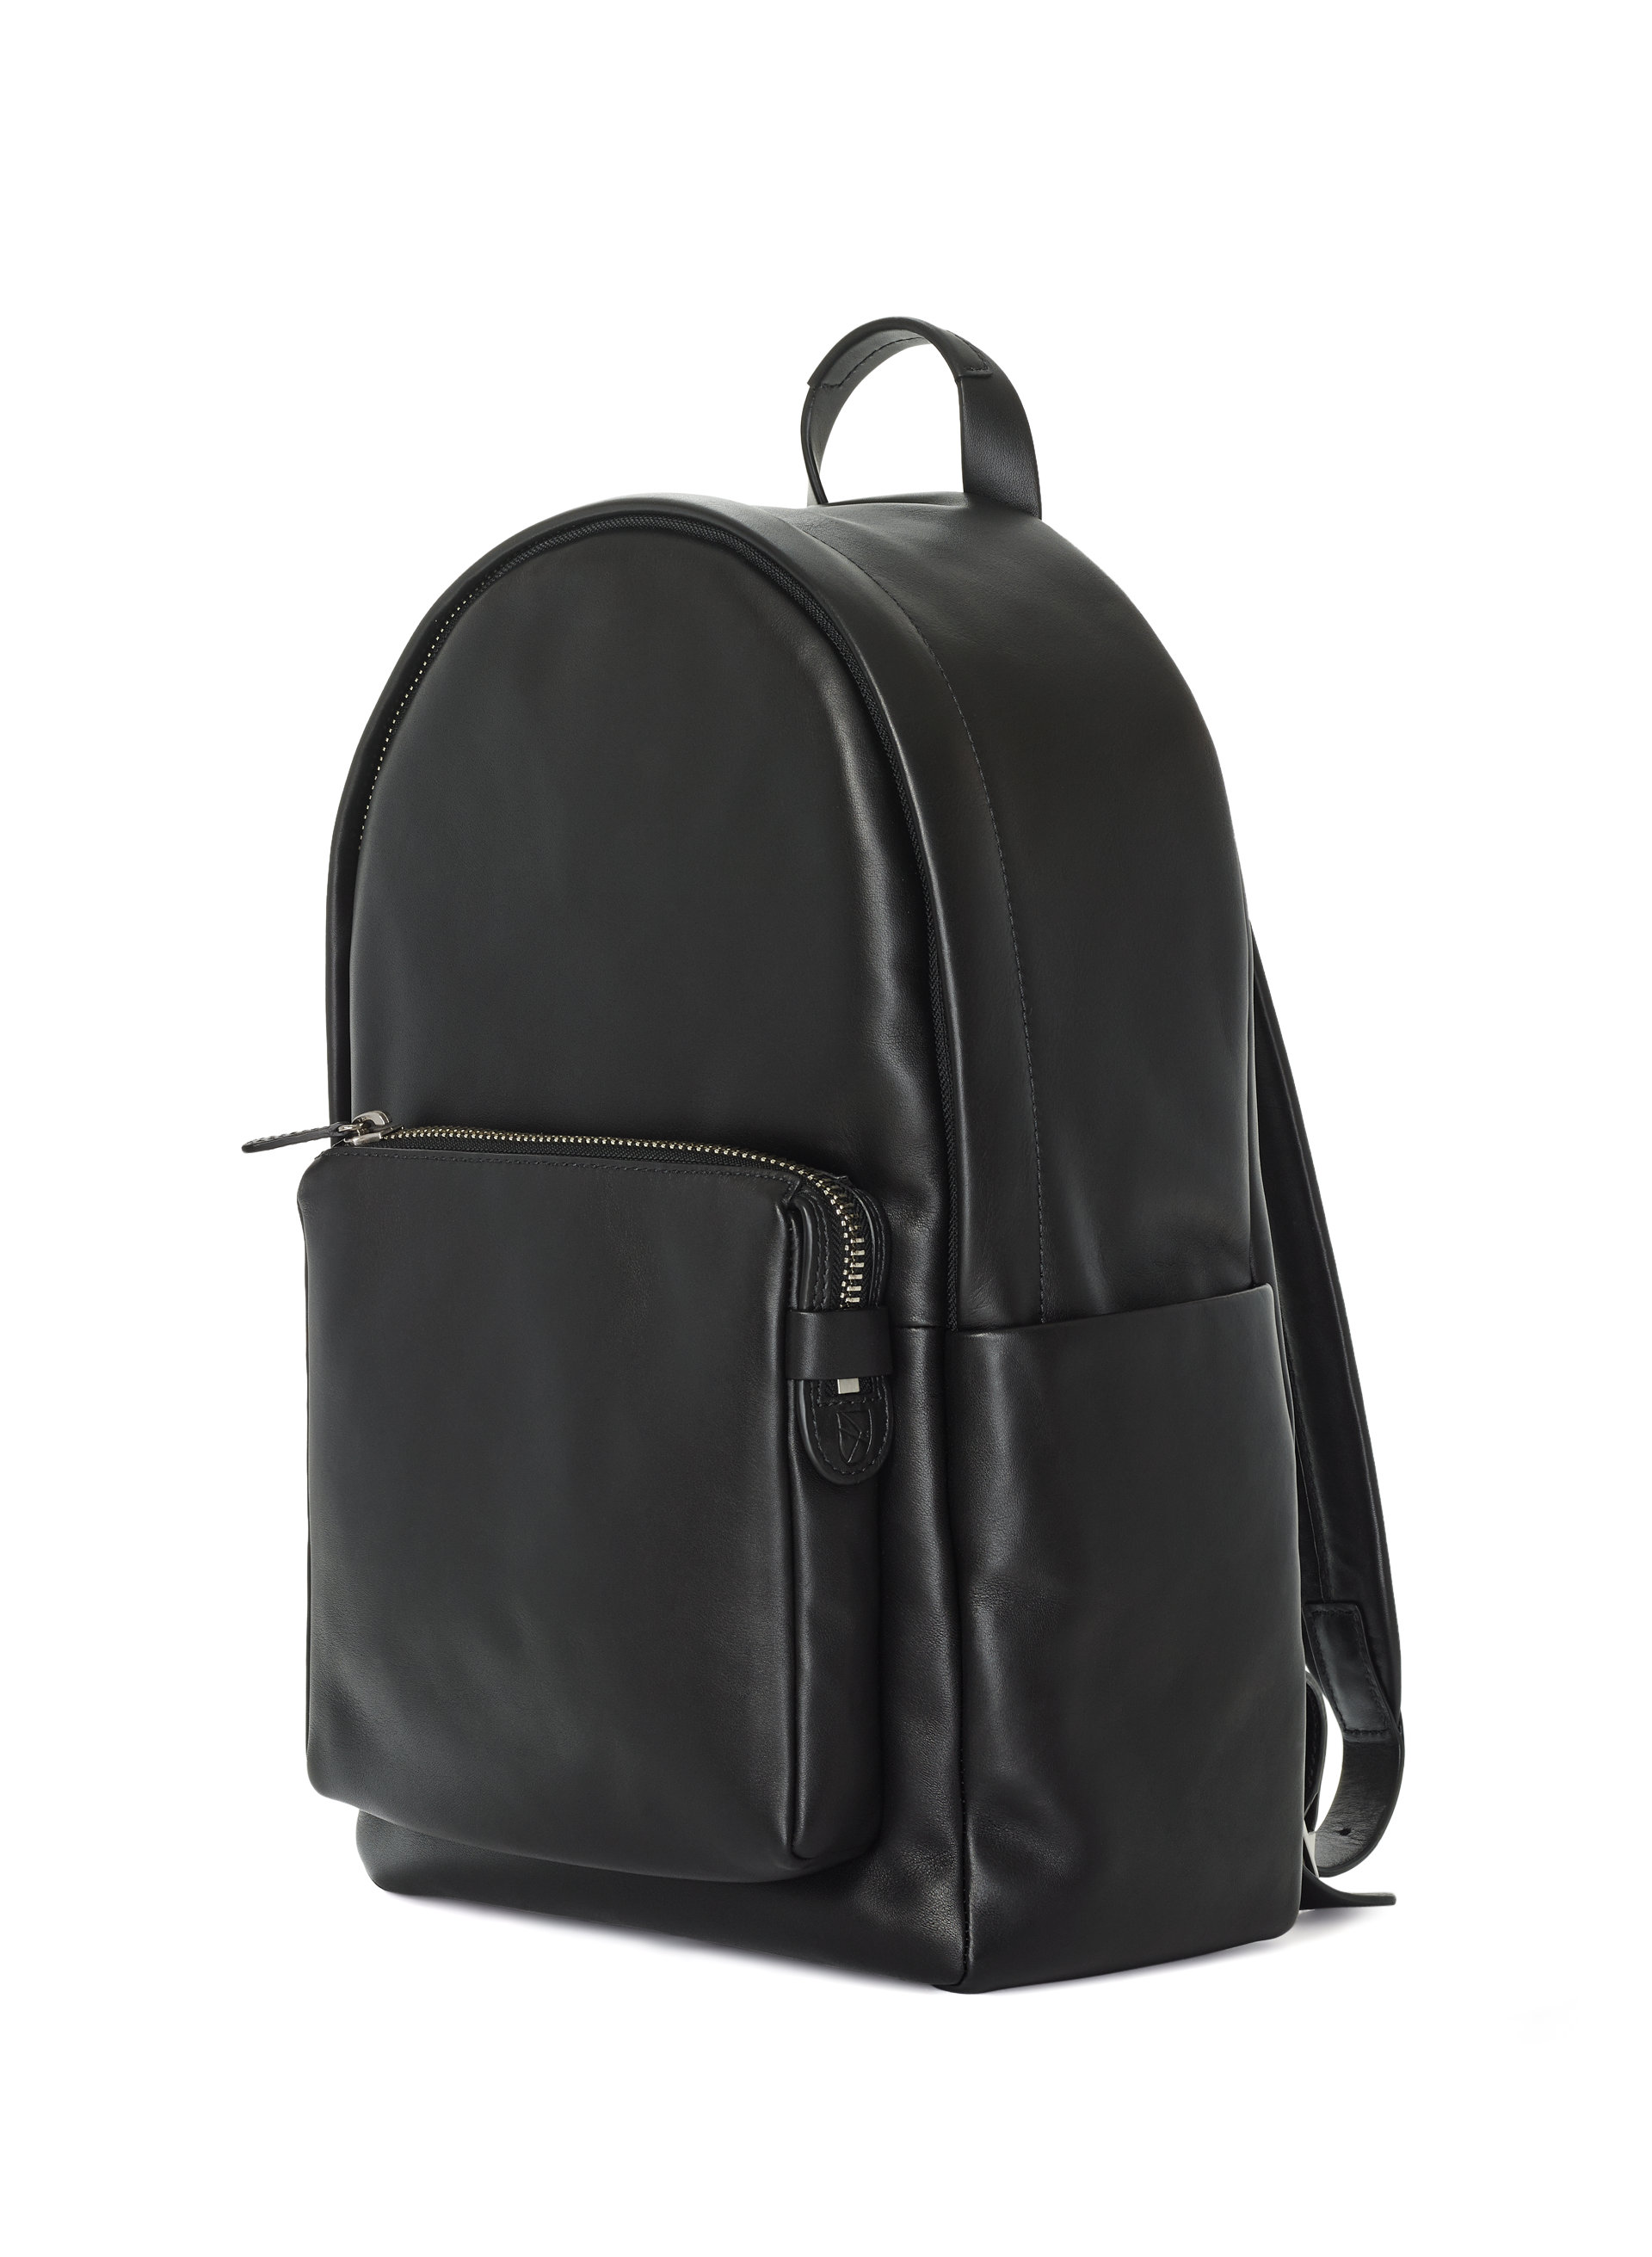 Leather Backpack Brands - Crazy Backpacks